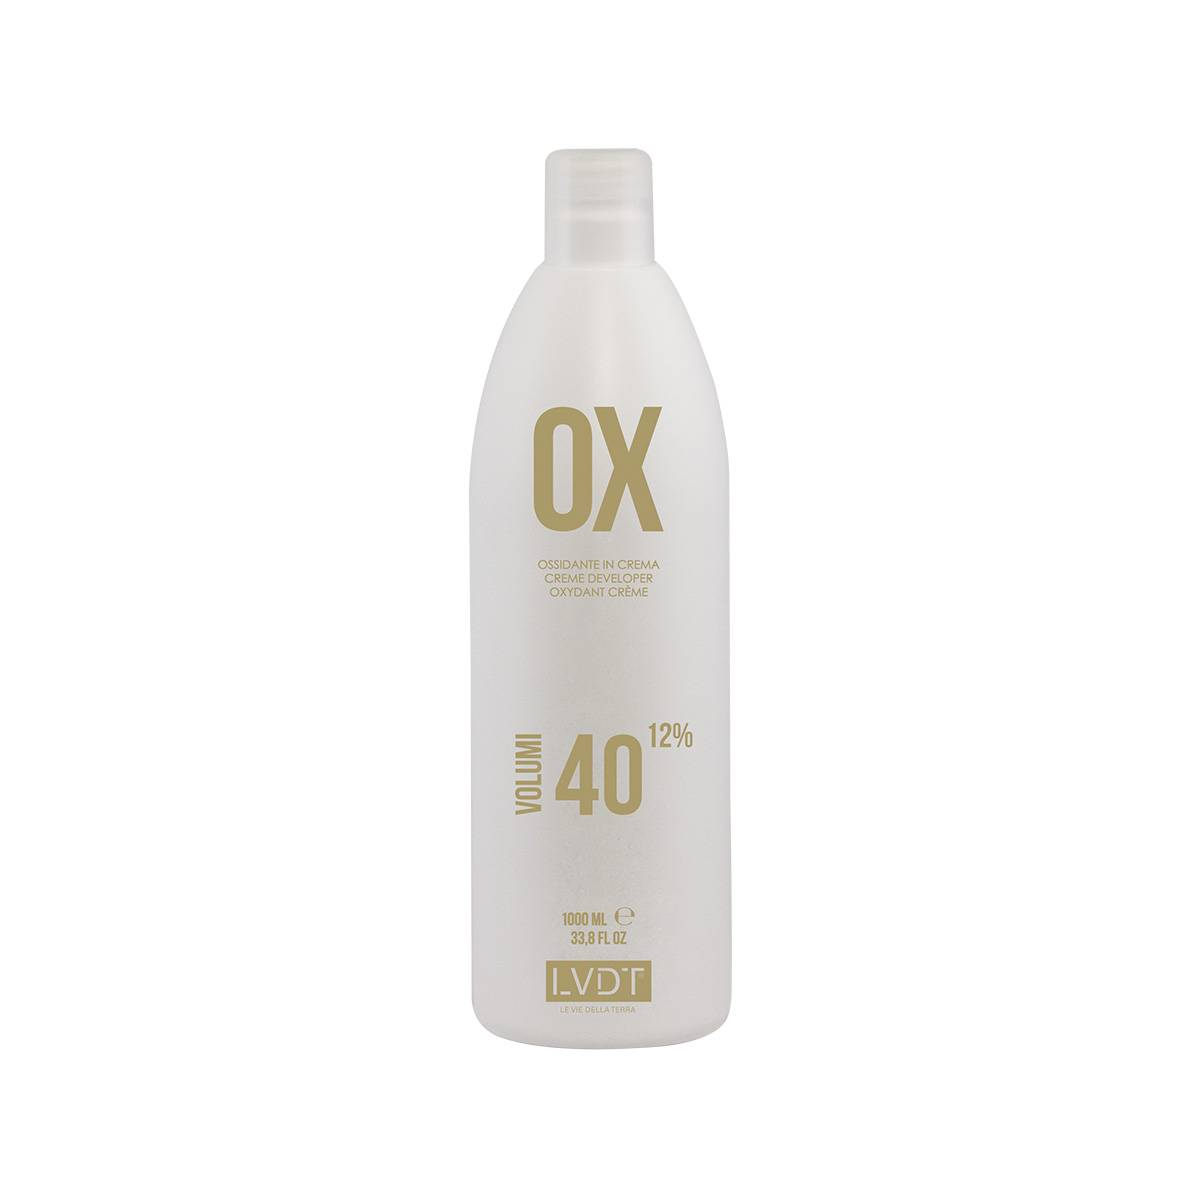 Lvdt Ossidante In Crema 40 Vol 1000 Ml